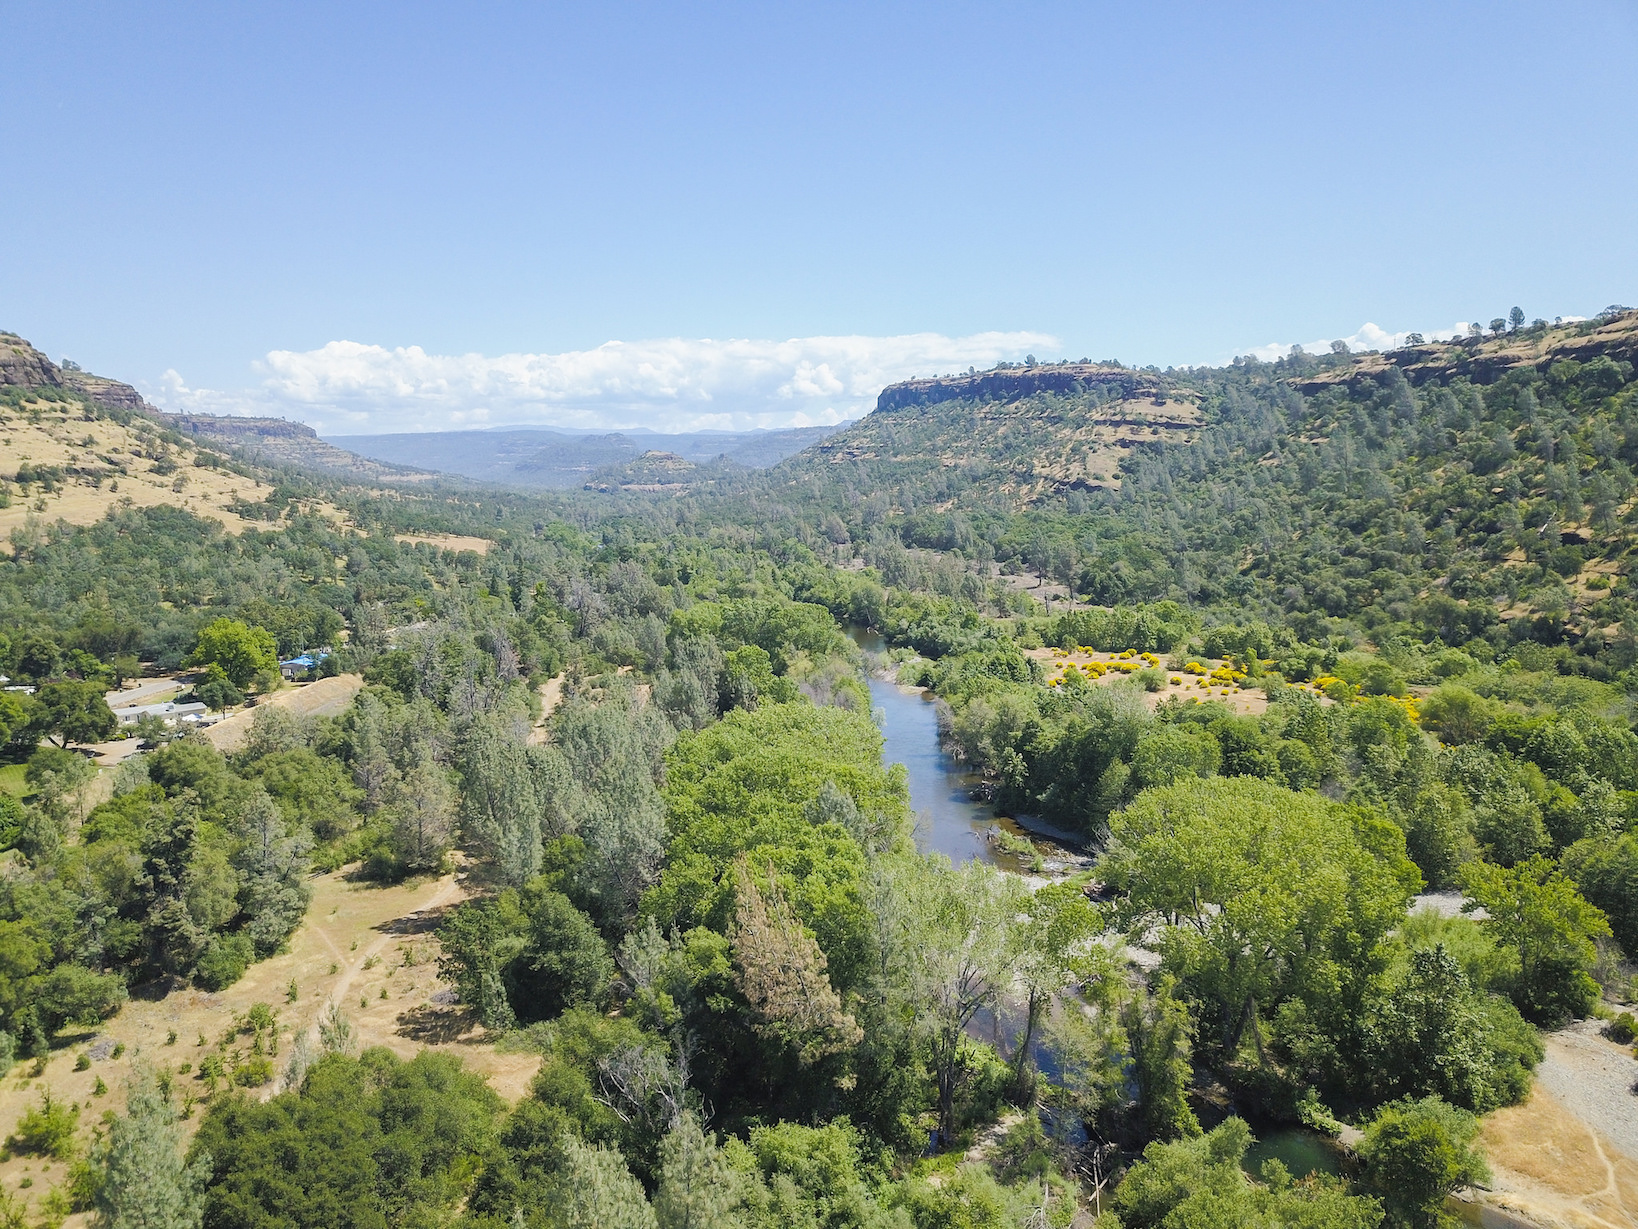 Butte Creek canyon drone photo